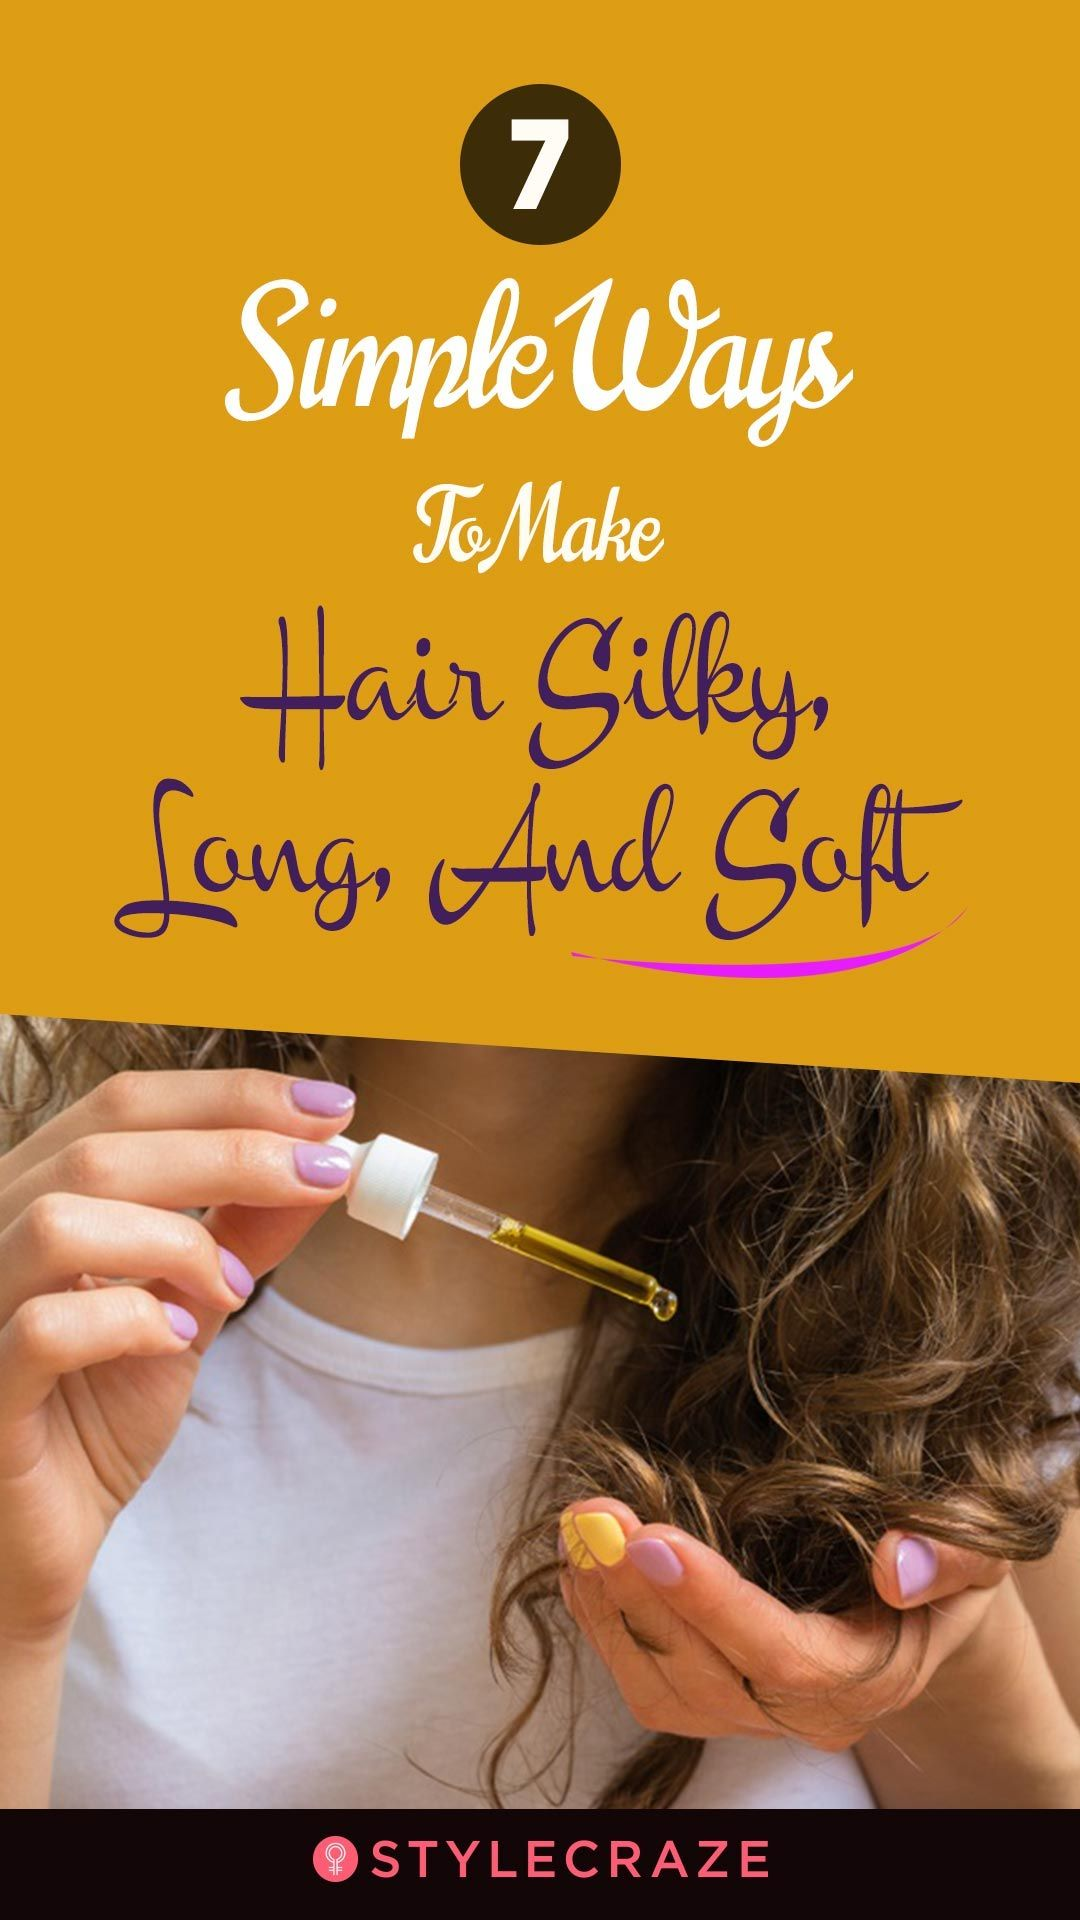 7 Simple Ways To Make Hair Silky, Long, And Soft recommend